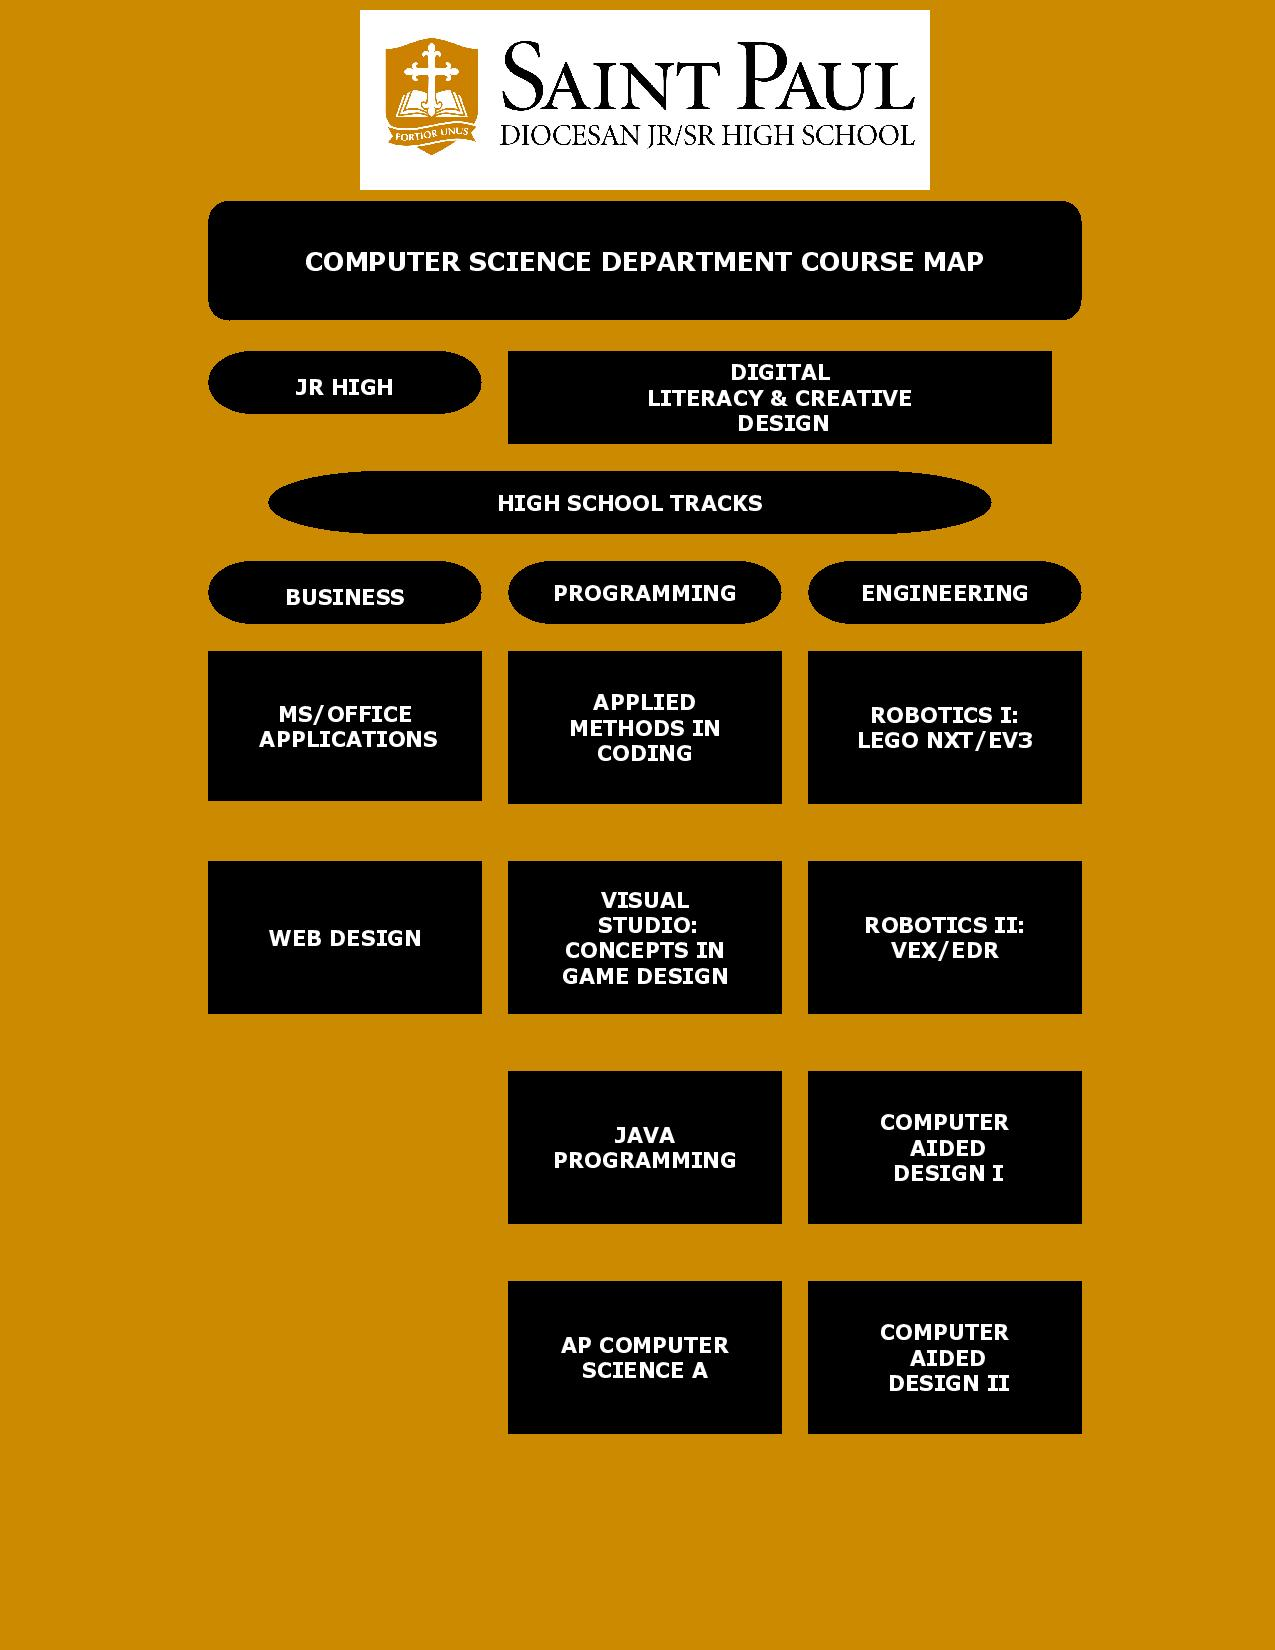 CourseMap for ComputerScience